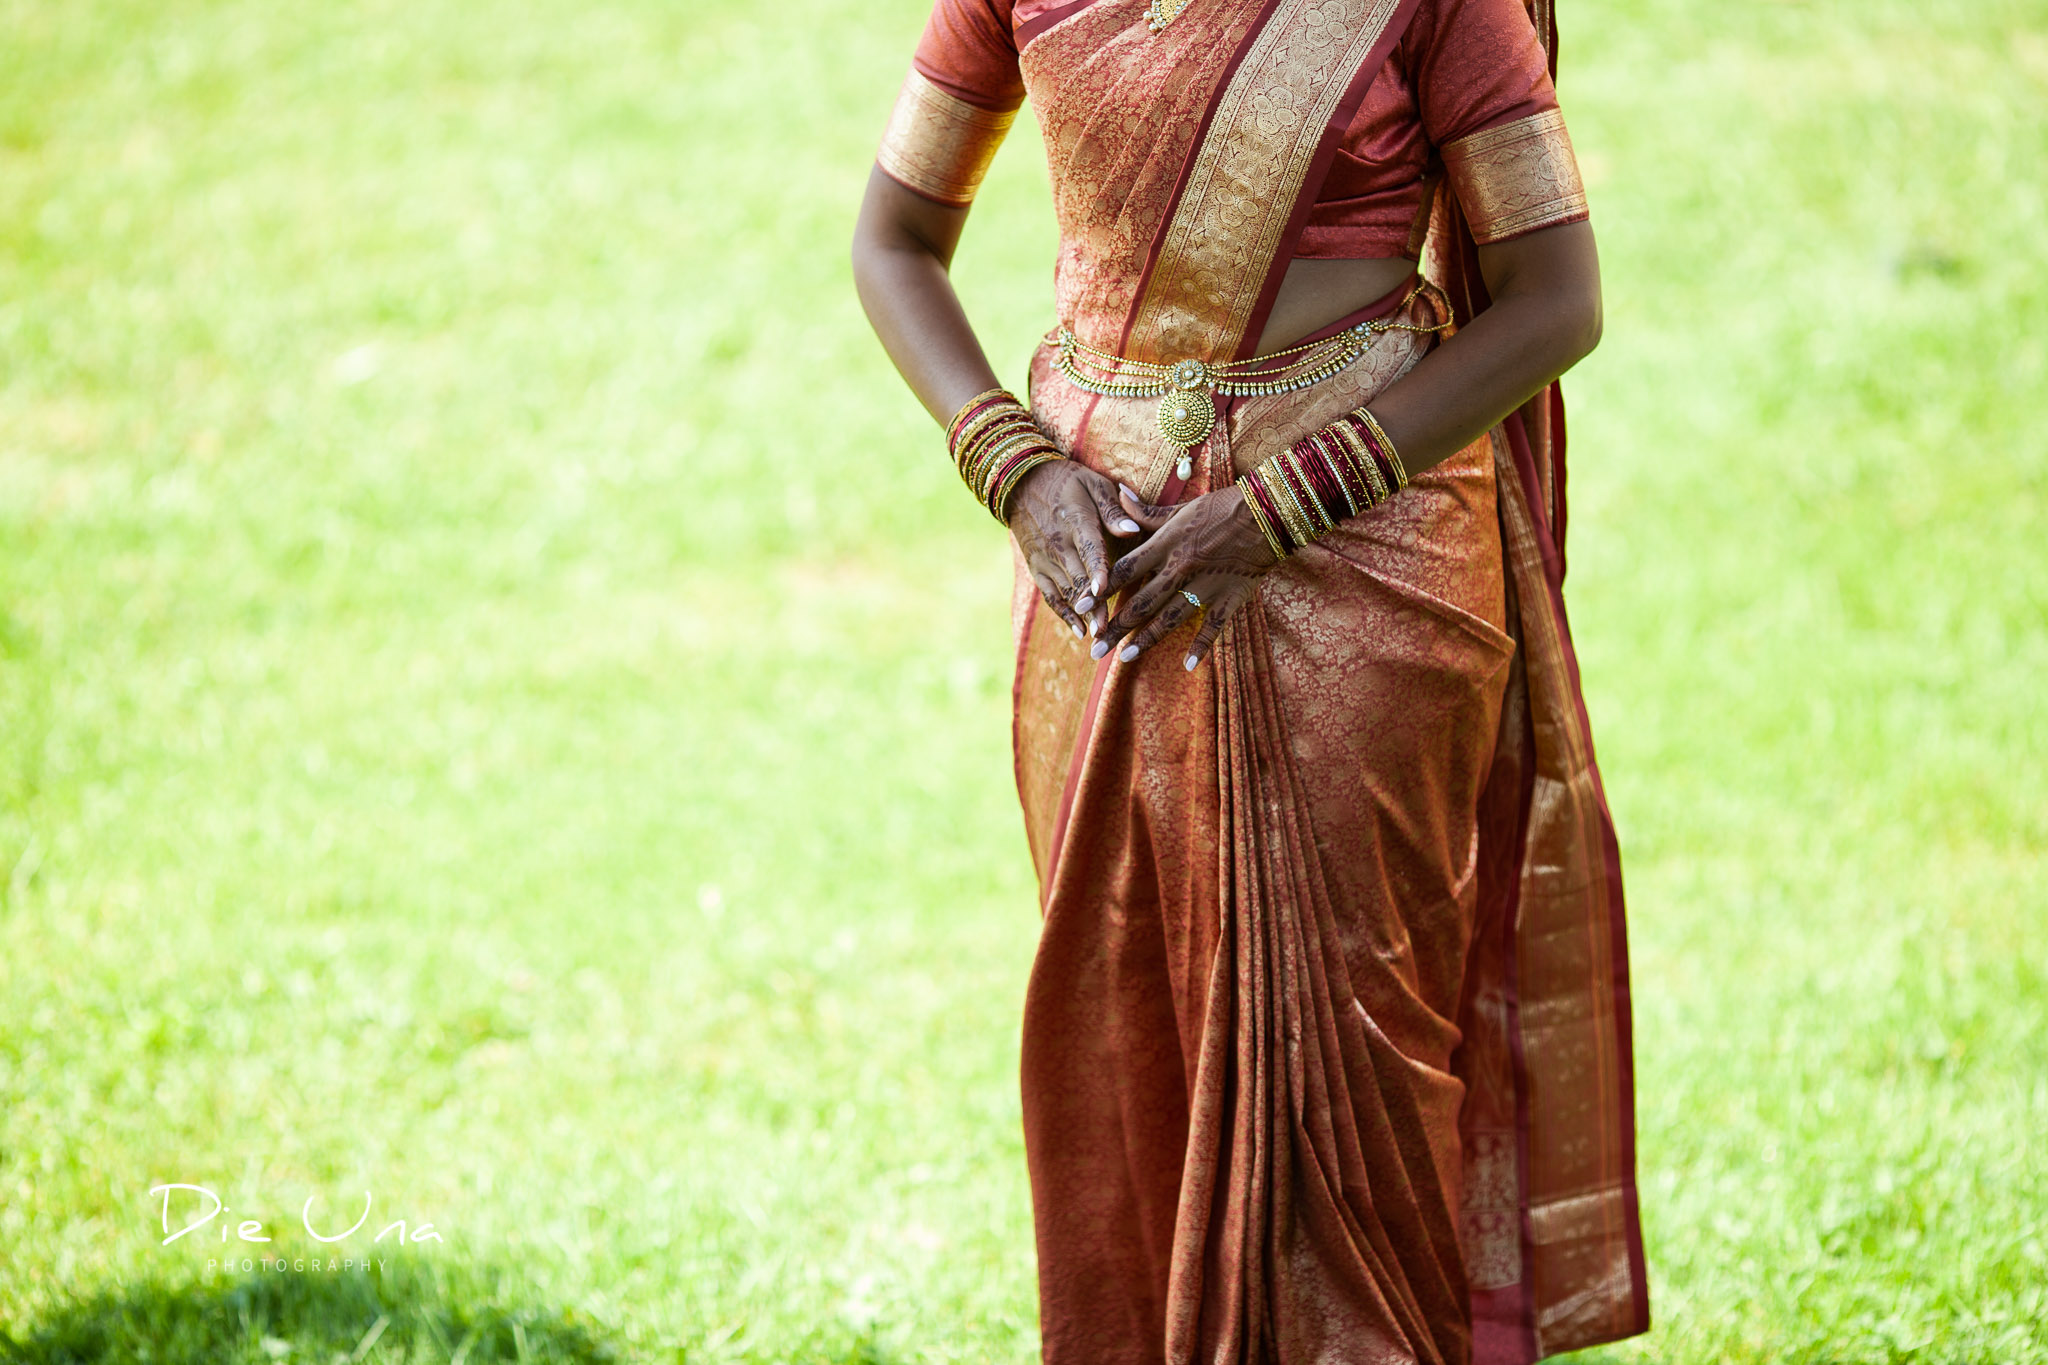 detailed image of bride wearing saree.jpg